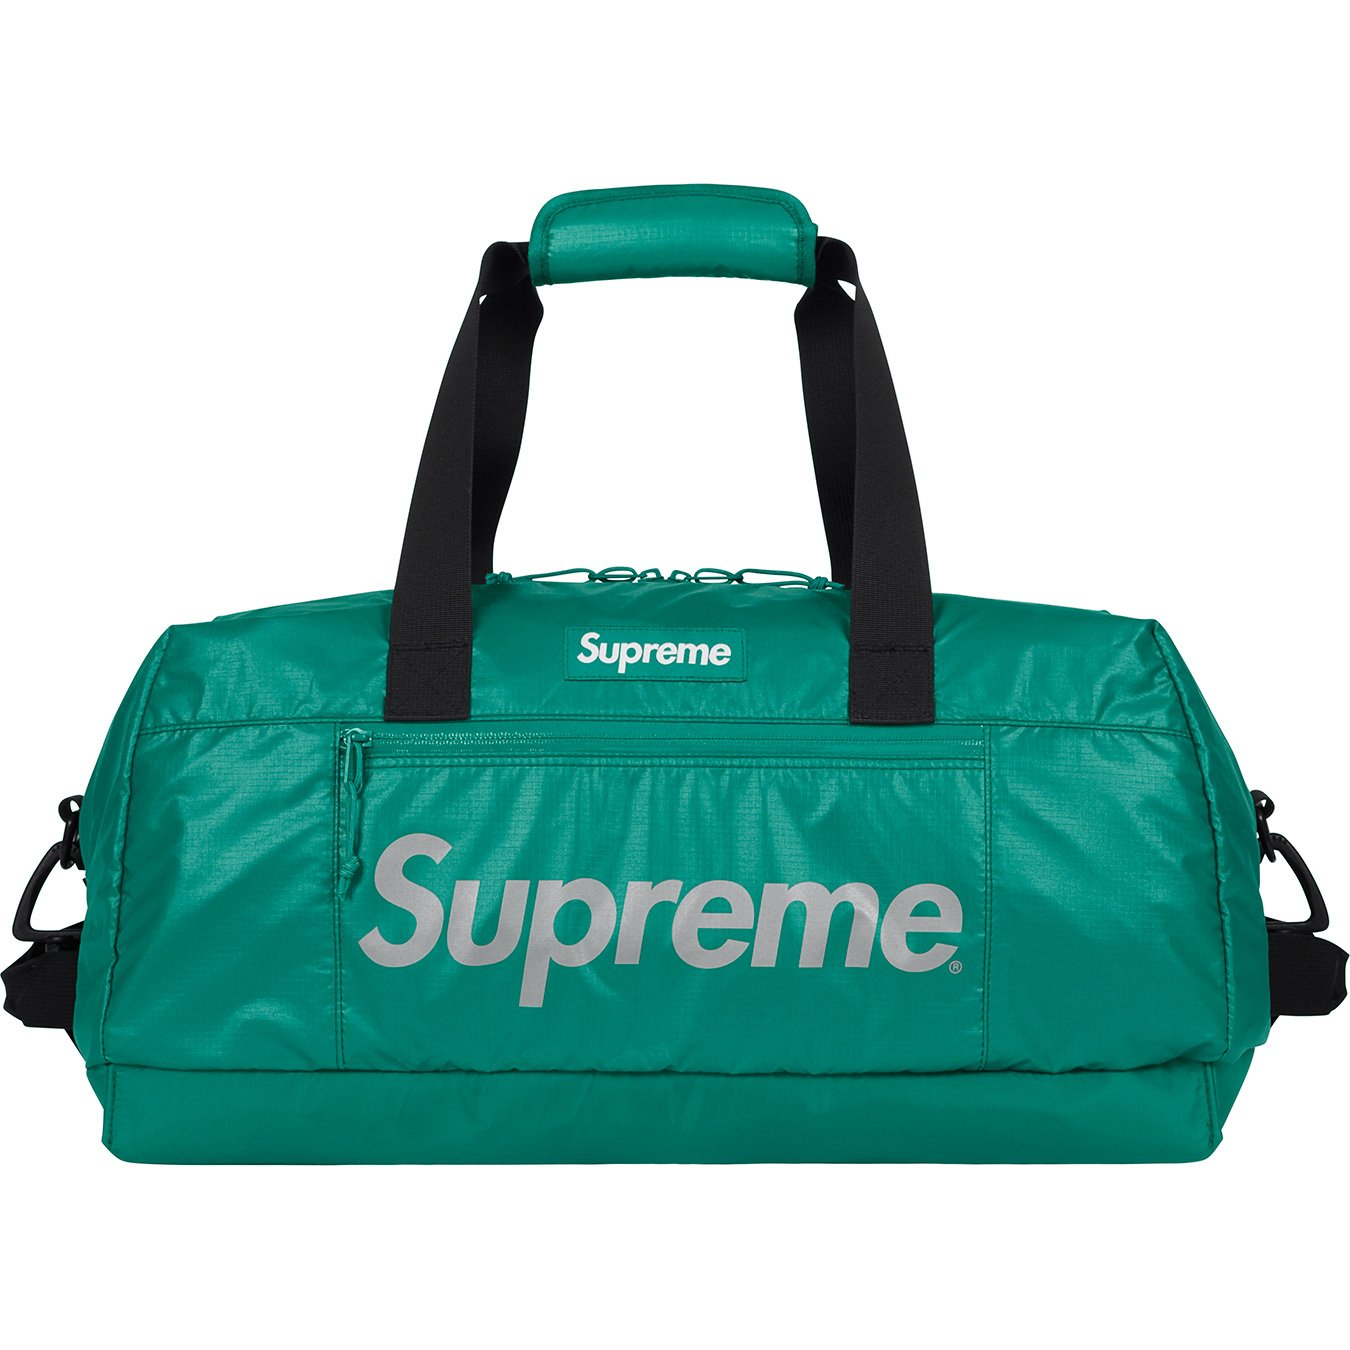 supreme-2017aw-fall-winter-duffle-bag